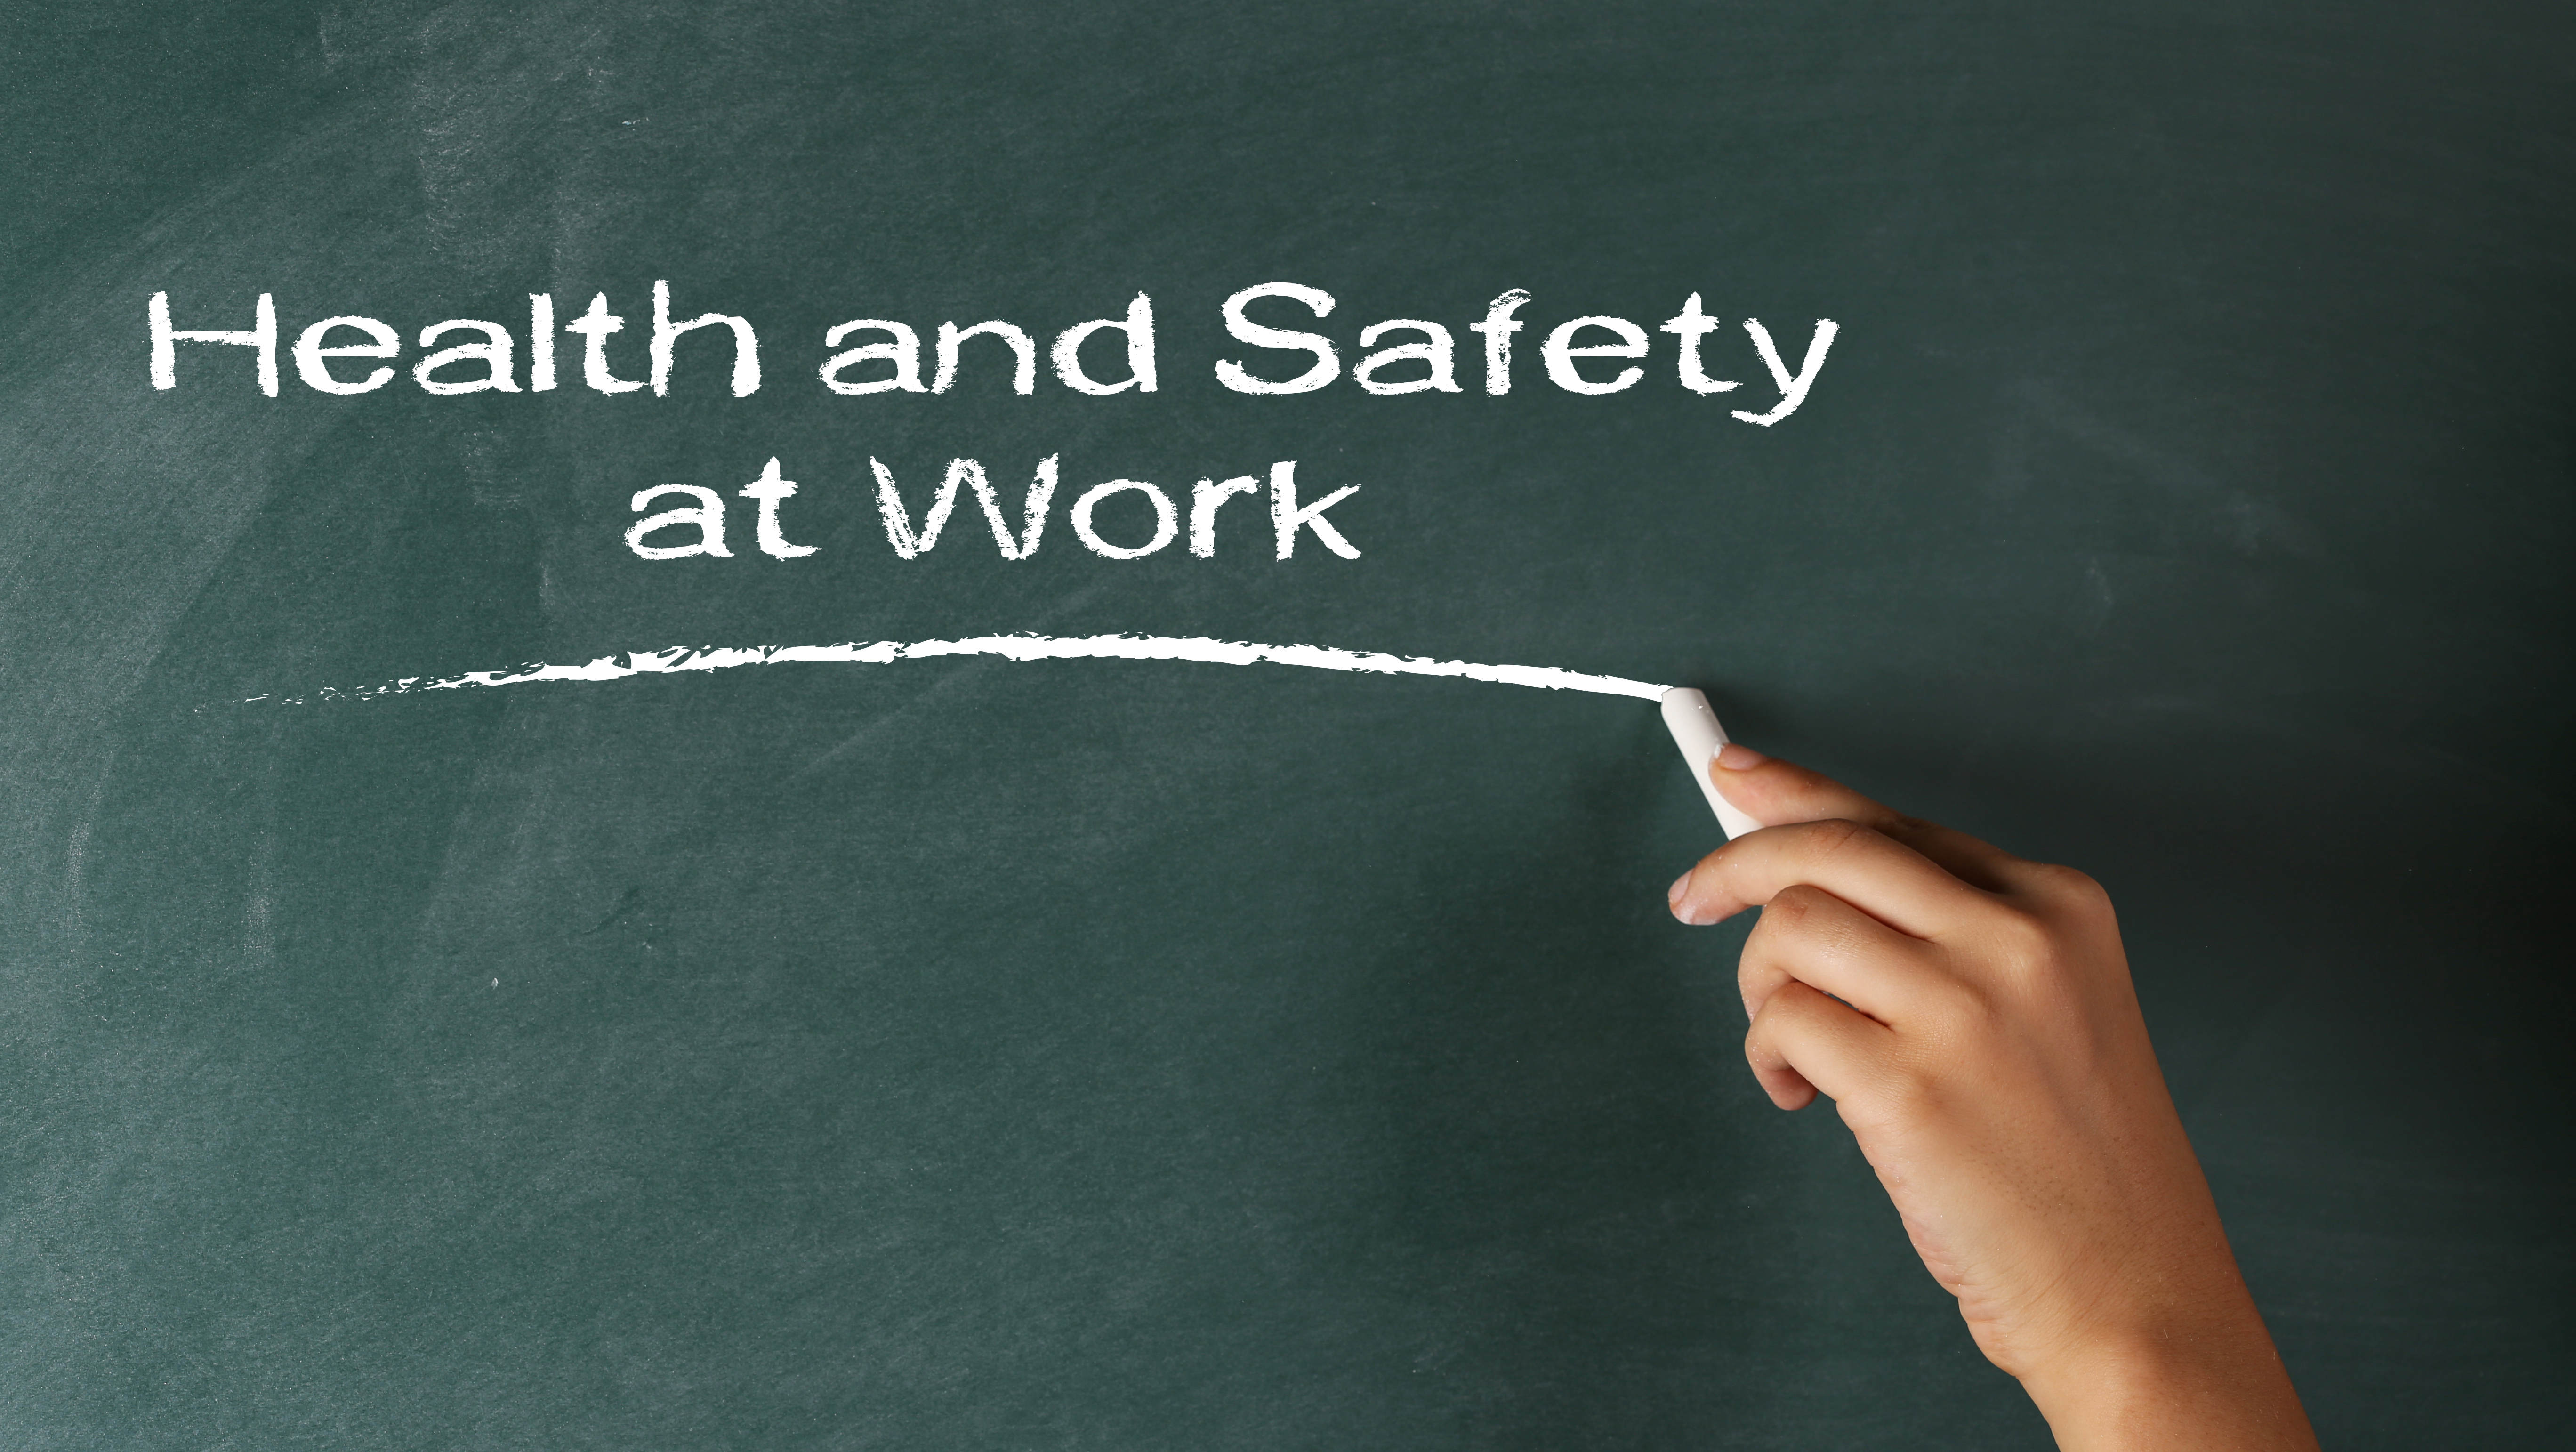 Workplace Health and Safety Awareness in Healthcare